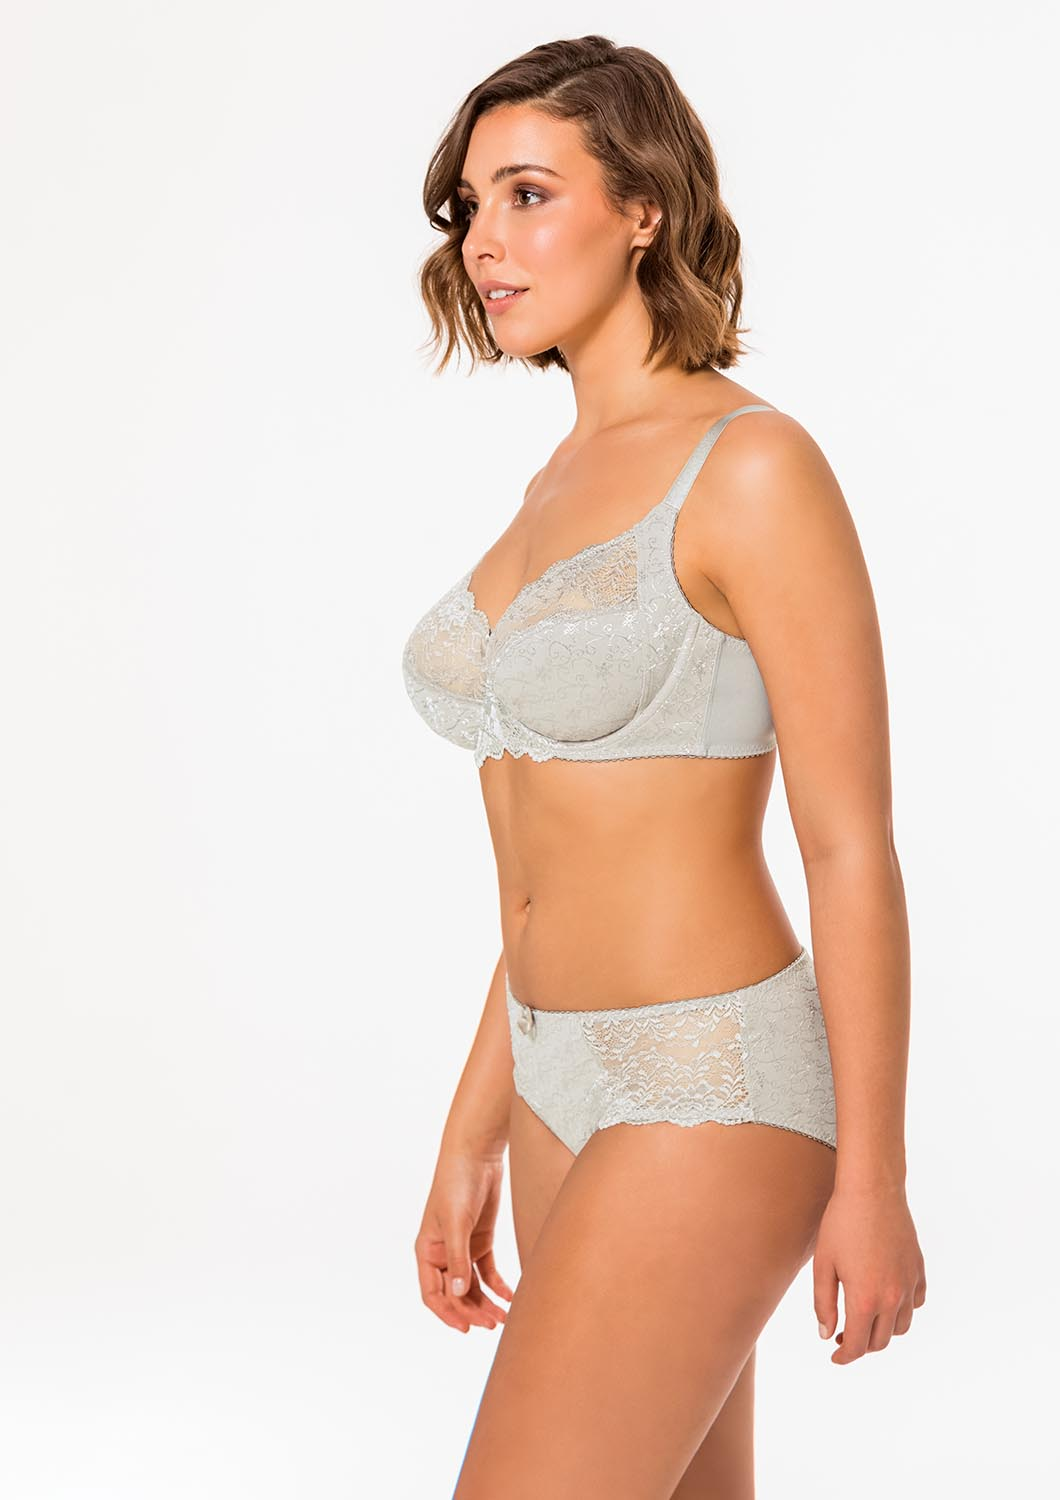 1060X1500H_Dorina_Onbody_Curves_Philippa_D15006A-T09_Non_Padded_Bra_D65006B-T09_Hipster_Light_Grey_L 2